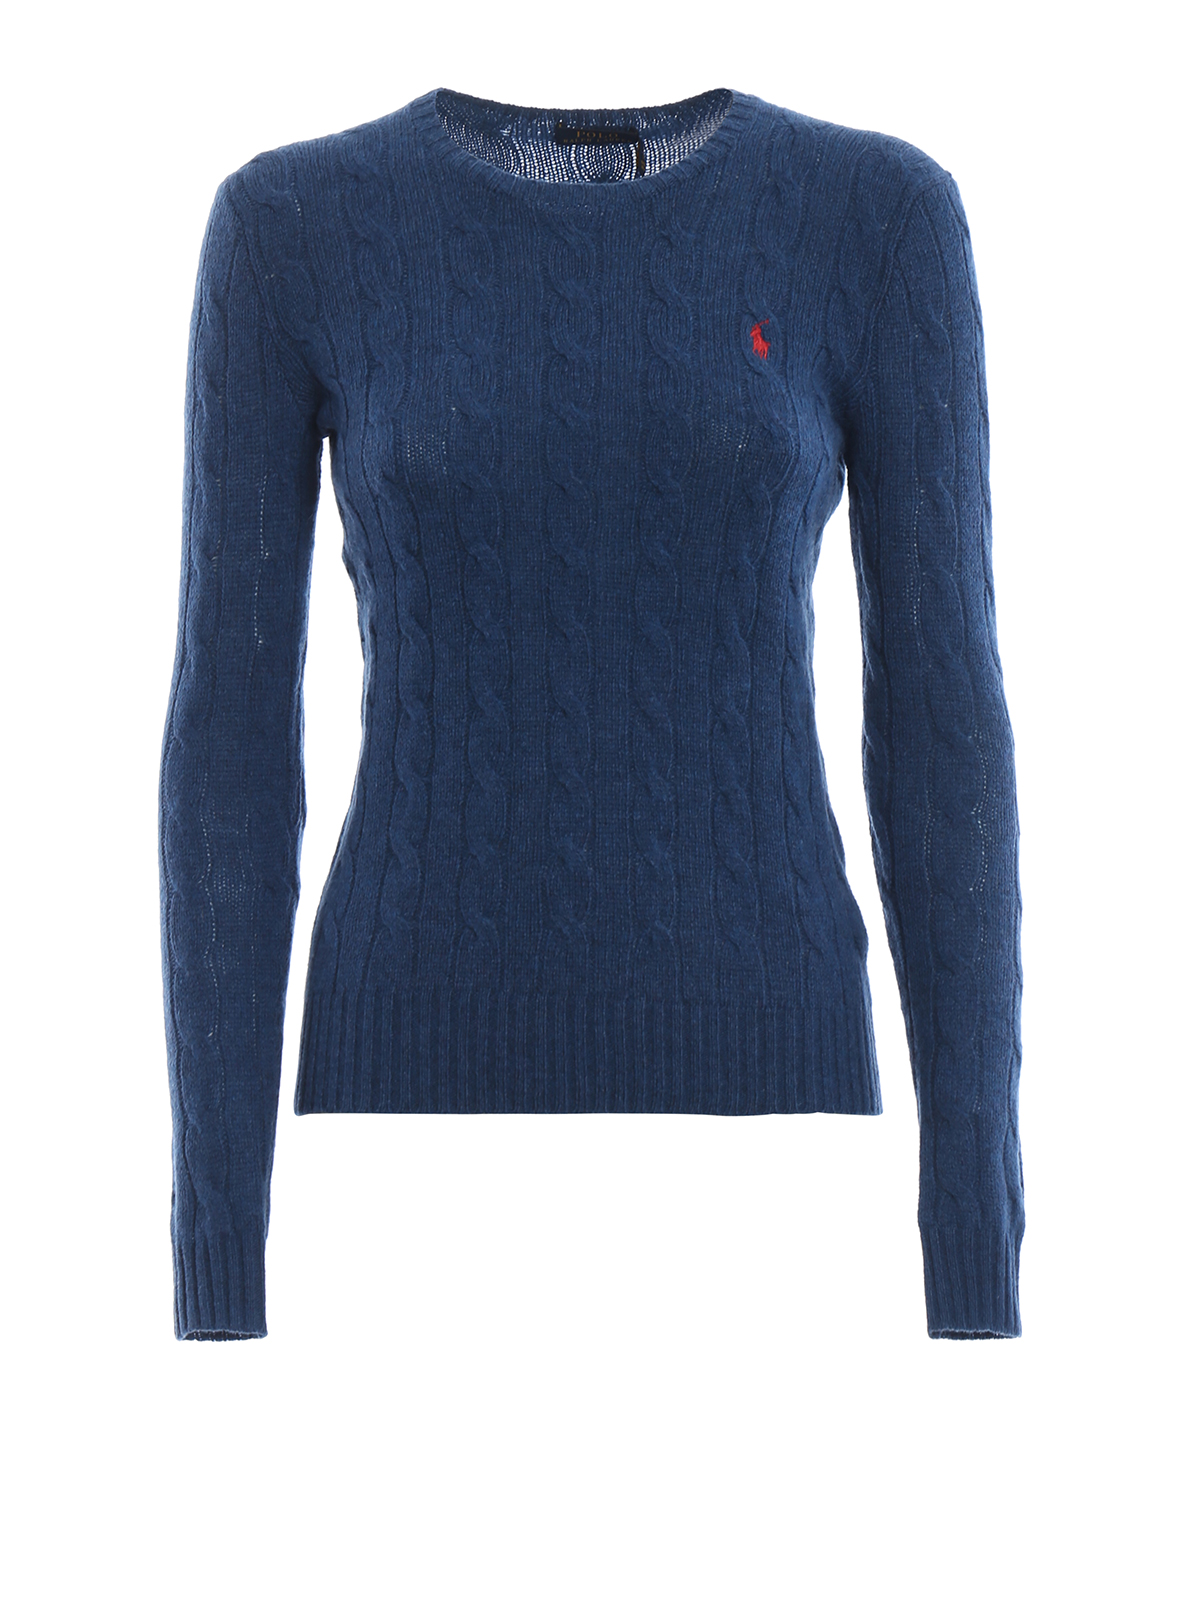 260949c8d Cable knit merino and cashmere sweater - POLO RALPH LAUREN - Paolo Fiorillo